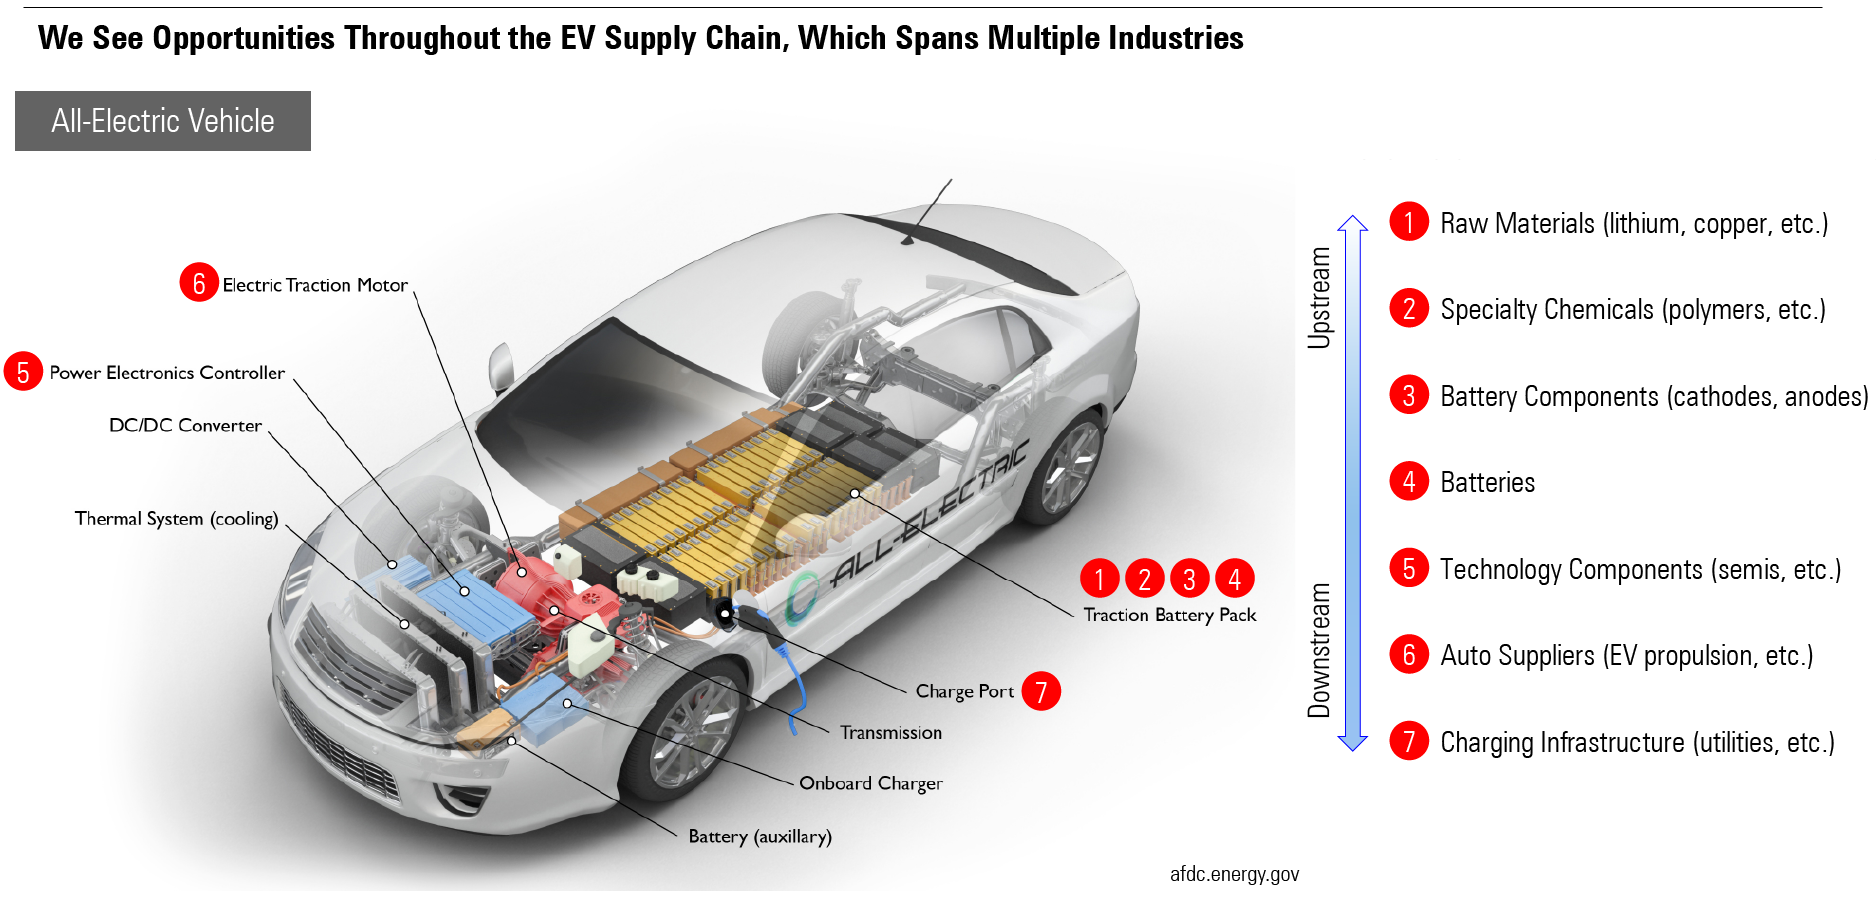 Opportunities throughout the EV supply chain